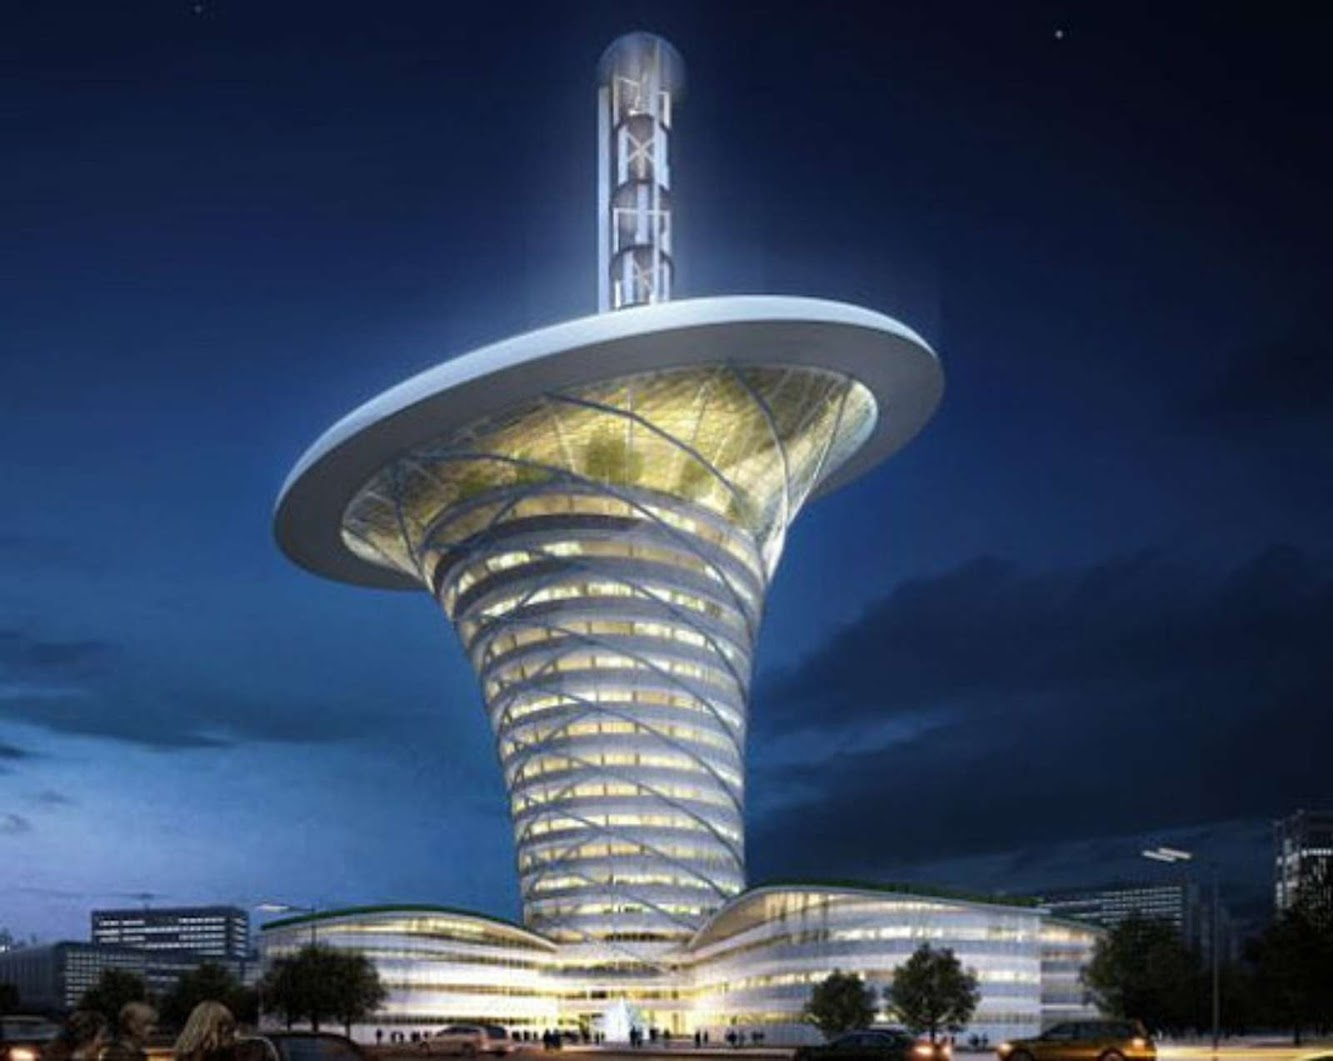 Wuhan Energy Centre by Grontmij and Soeters Van